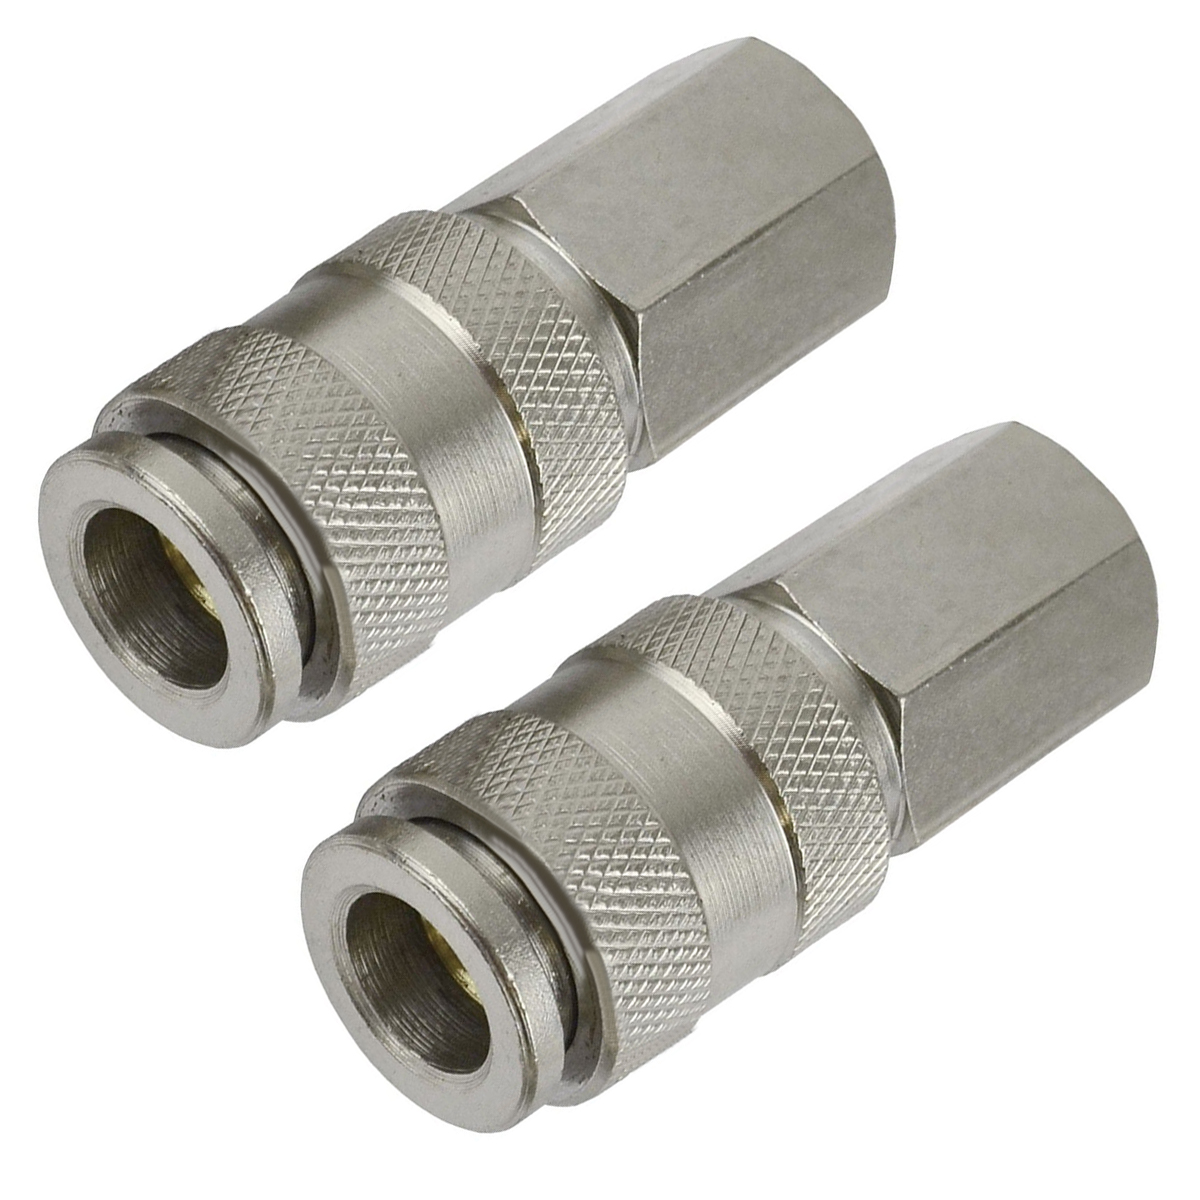 2pcs Mayitr Air Line Hose Connector 1/4 BSP Thread Euro Fitting Female/Male Quick Release Set 2pcs air line hose connector euro female quick release fitting with 1 4 bsp male thread mayitr for home tool accessories